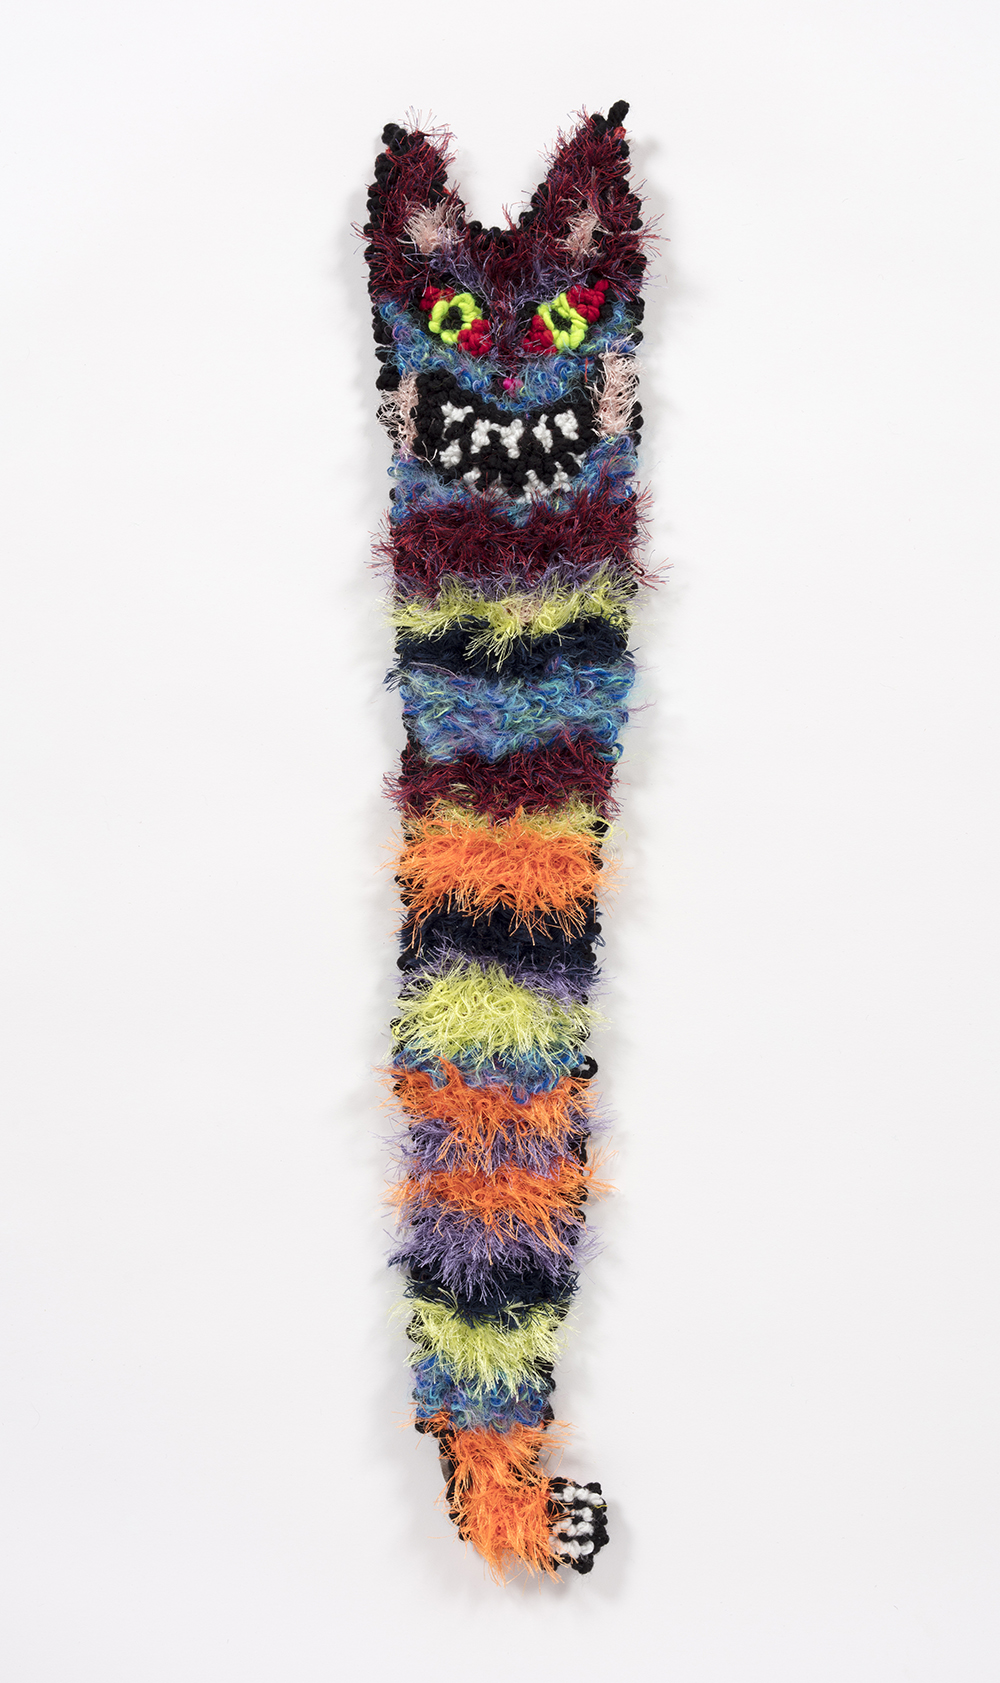 Hannah Epstein. <em>Cat Cane</em>, 2019. Wool, acrylic, polyester and burlap, 31 x 6.5 1/2 inches  (78.7 x 17.8 cm)